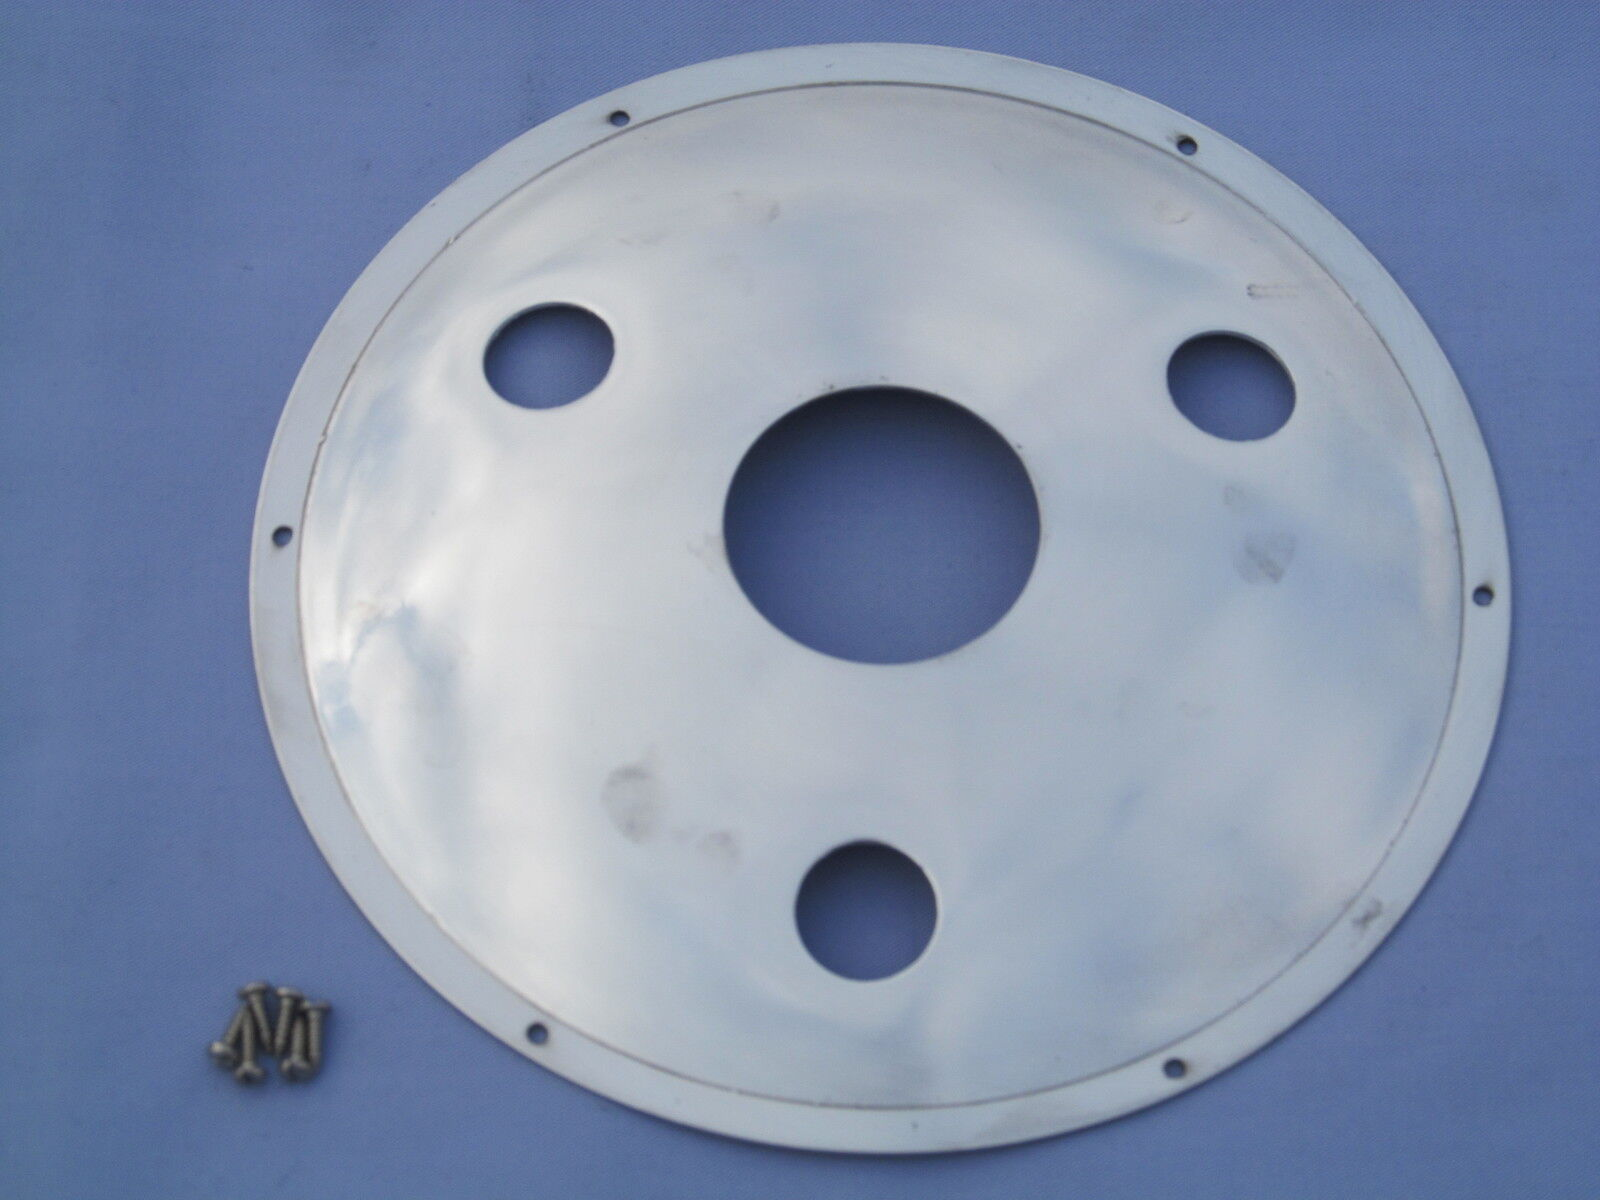 Motorcycle Parts Norton Commando Atlas Dominator rear drum hub cover 3 hole 06-7711 NM18348